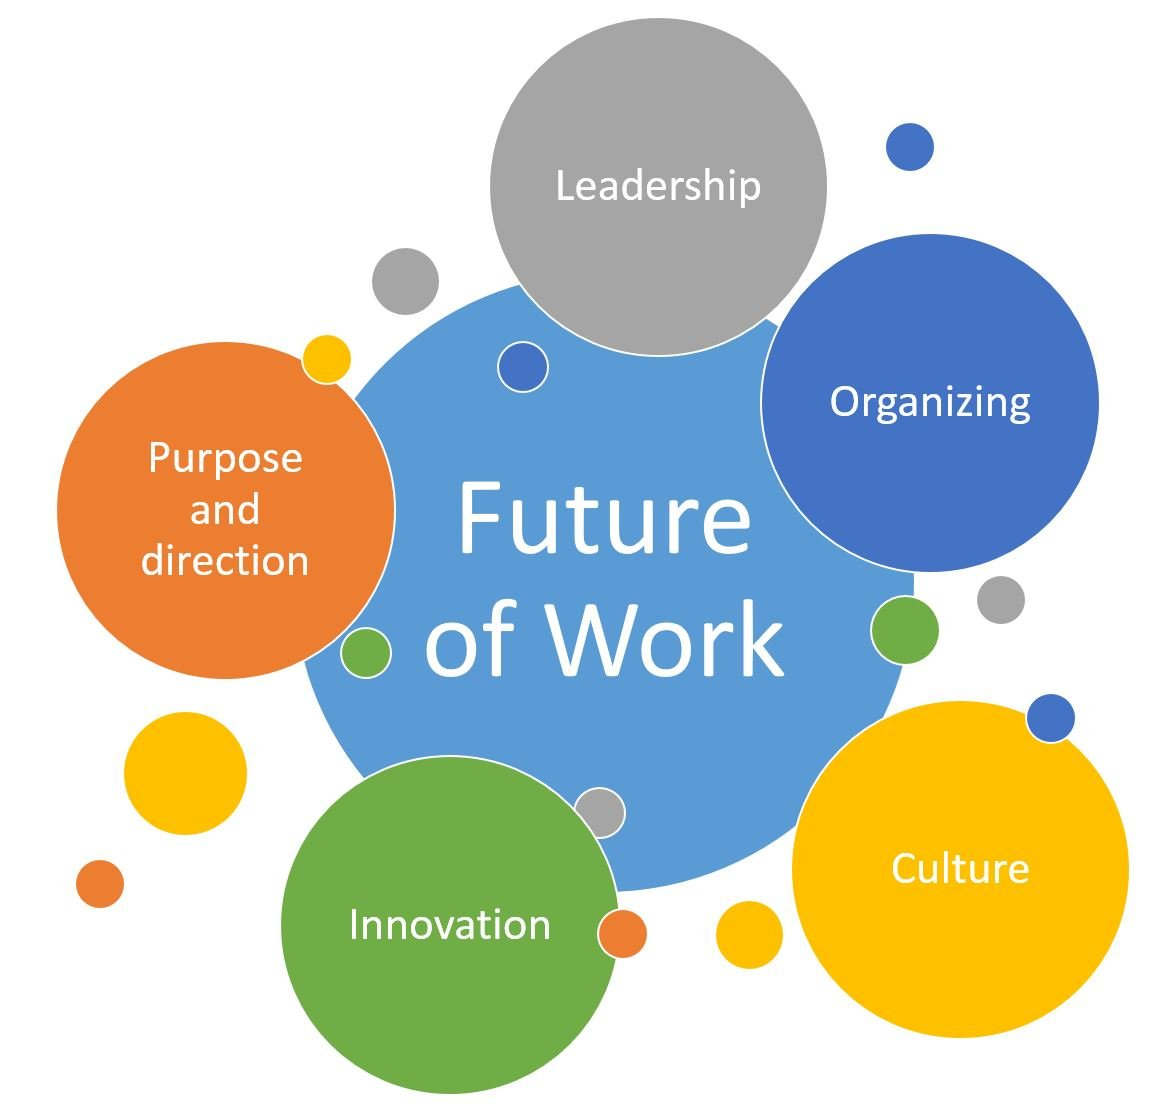 course get ready for the future of work bloch Østergaard future of work and new leadership requires an updated mindset and a new set of skills and behaviors we ll focus on these 5 areas and discuss the mindset